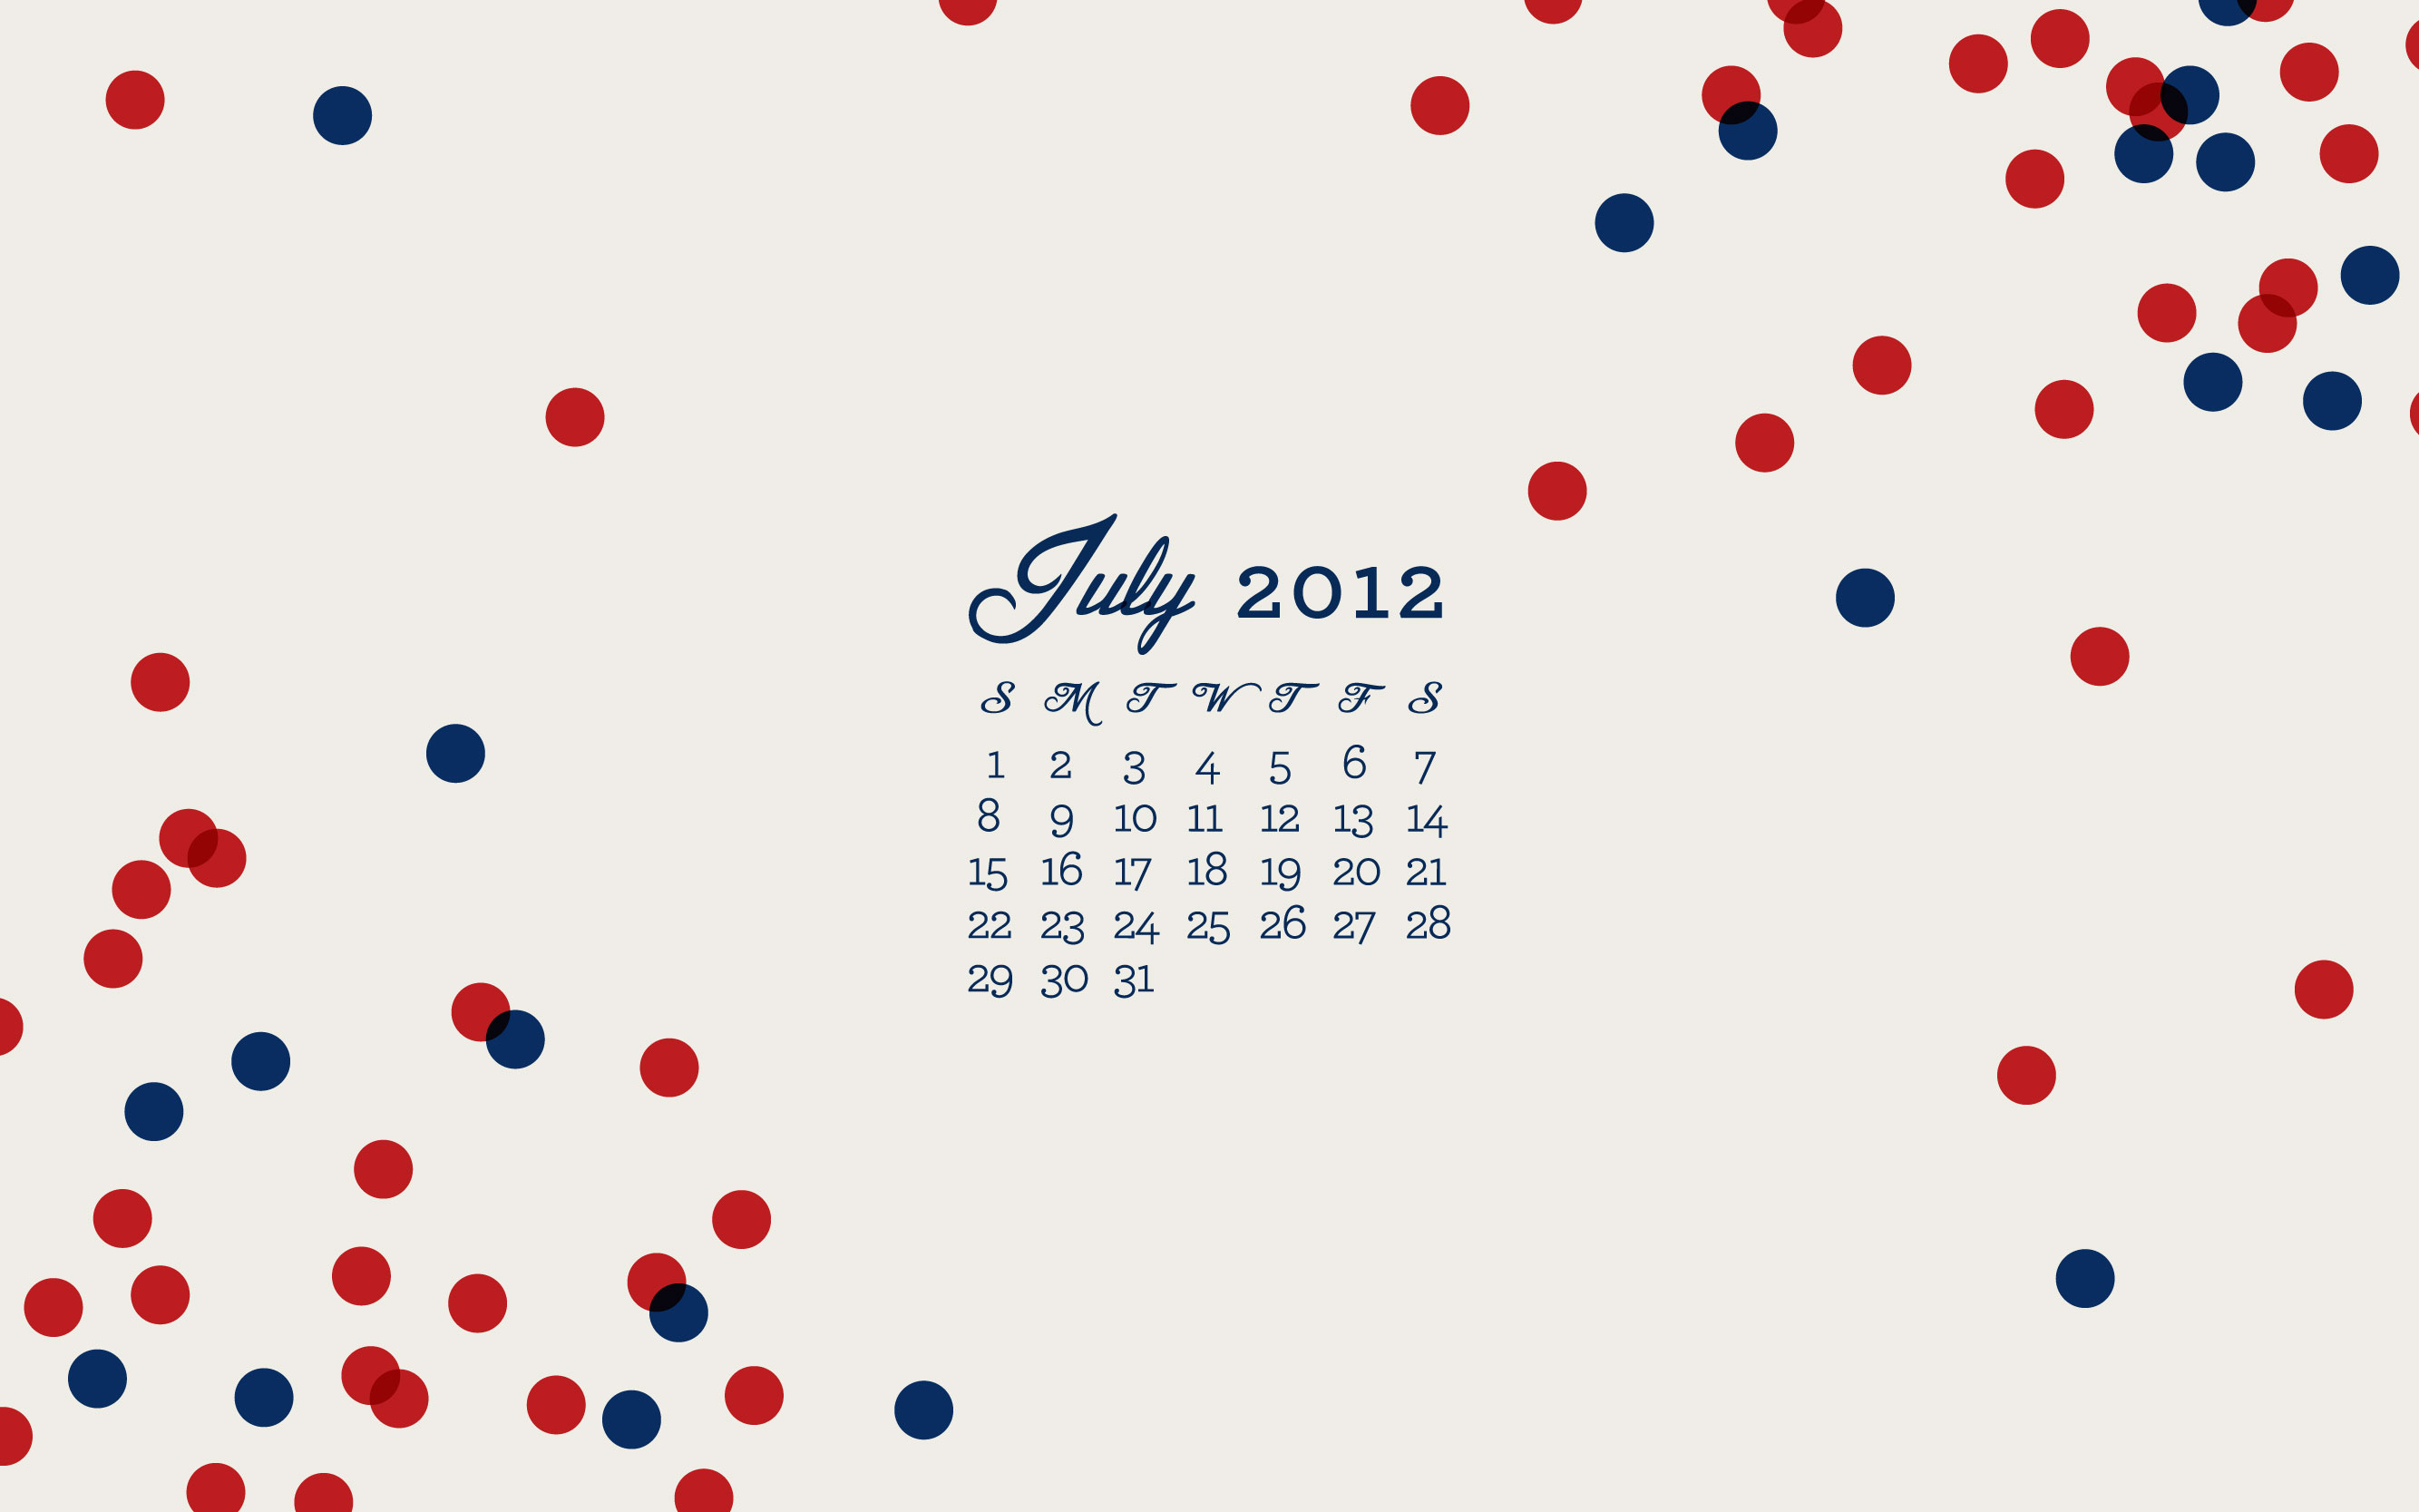 Calendar Wallpaper Iphone : July desktop iphone ipad calendar wallpaper